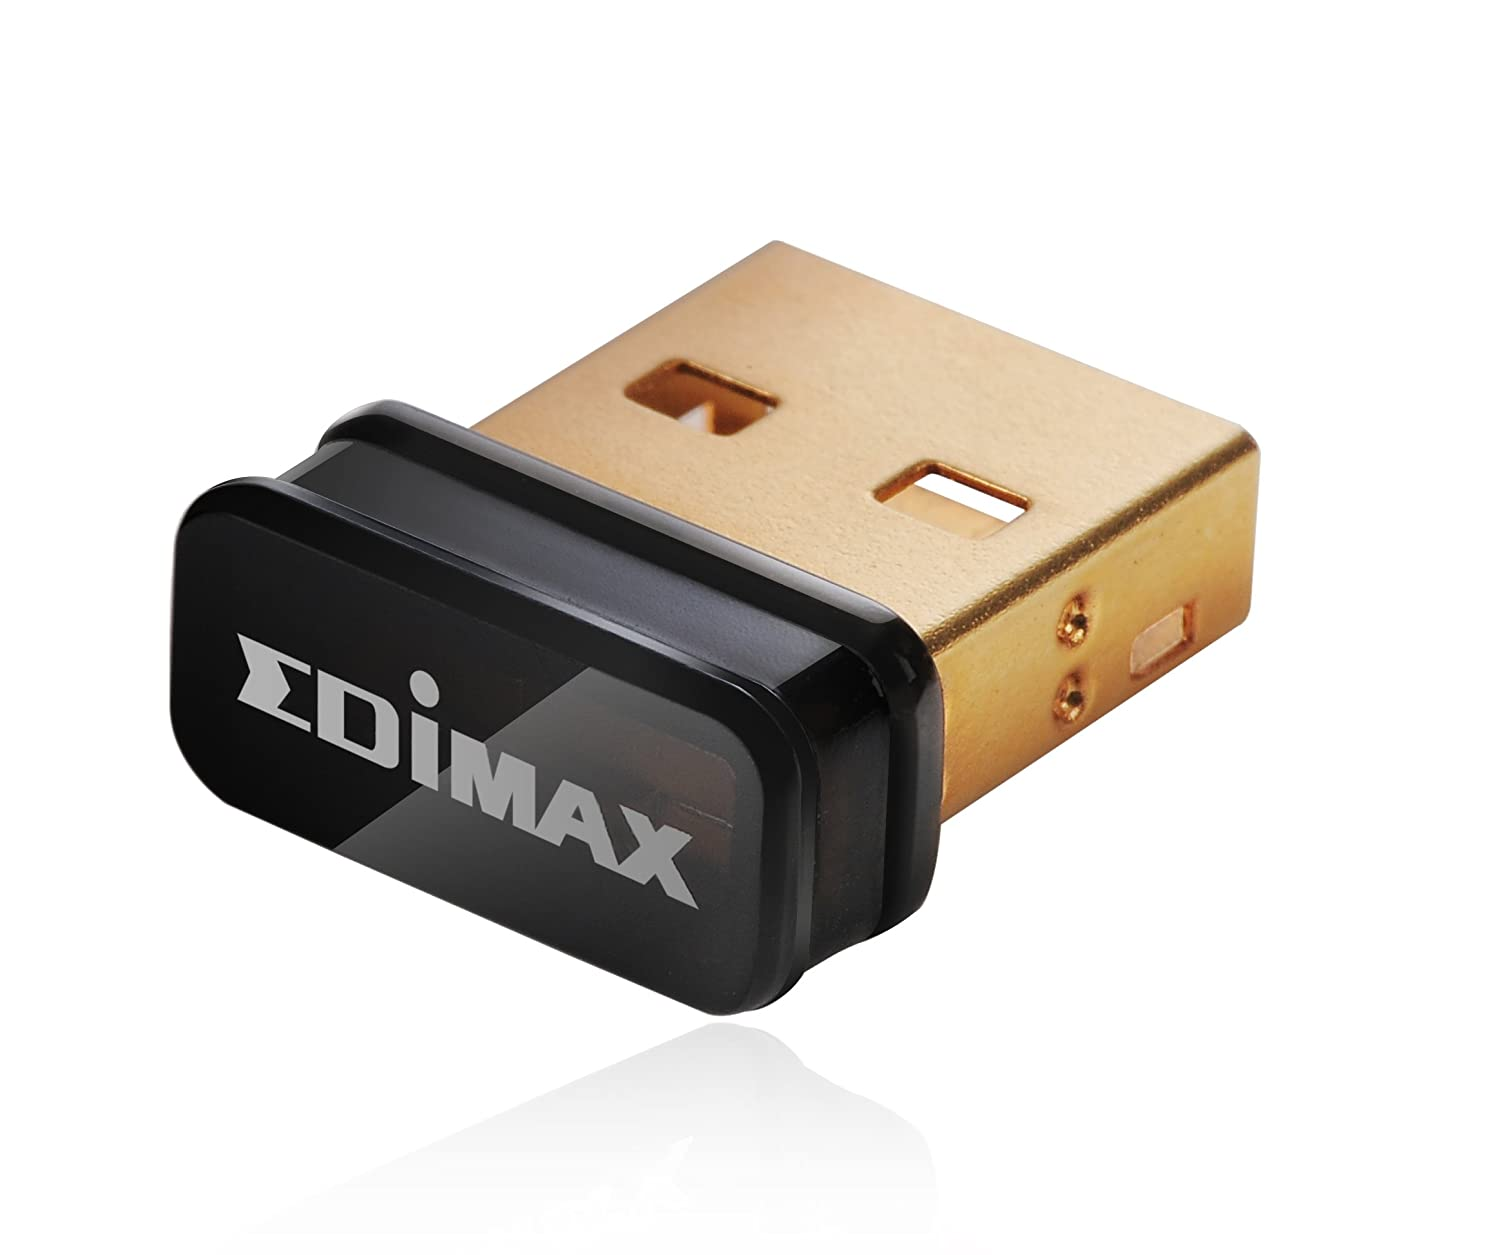 Edimax EW-7811Un 150Mbps 11n Wi-Fi USB Adapter, Nano Size Lets You Plug it  and Forget it, Ideal for Raspberry Pi / Pi2, Supports Windows, Mac OS,